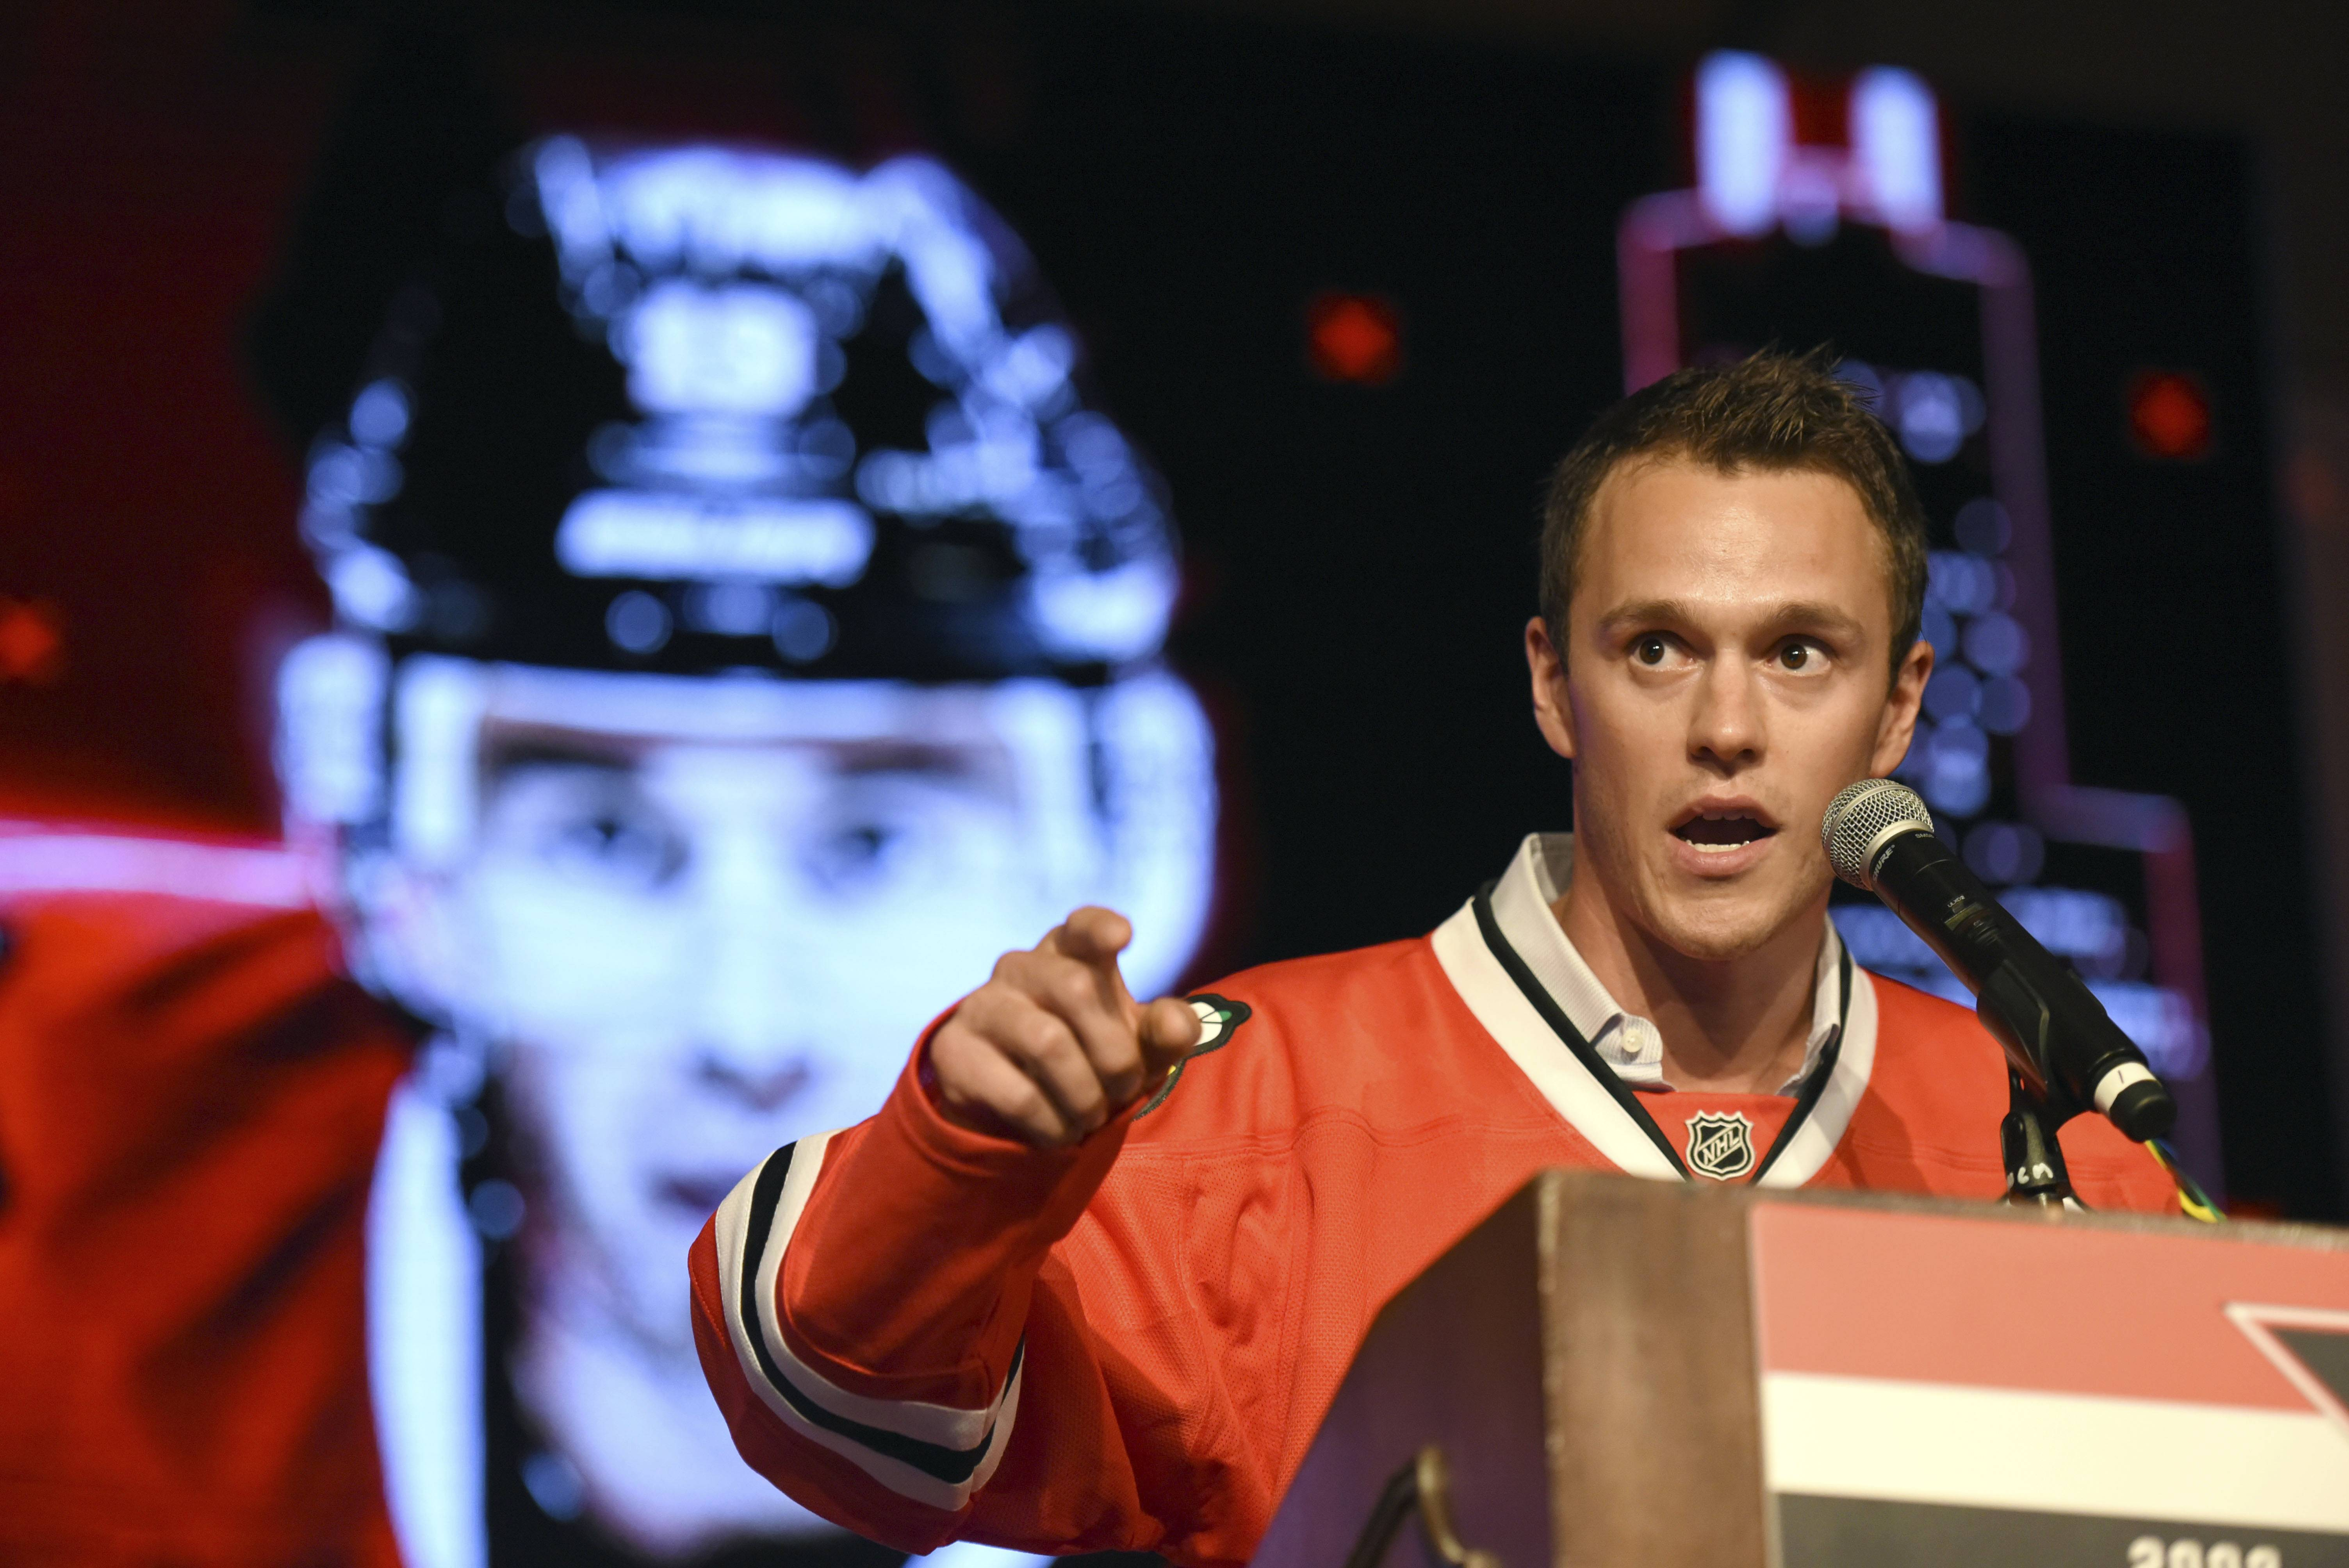 "Blackhawks captain Jonathan Toews speaks to fans during the NHL hockey team's convention Friday night in Chicago. Before the Convention kicked off, Toews said next year's team needs to start thinking as one. No more ""young guys"" and ""veteran guys."" Said Toews: ""We need to get rid of that whole idea and … get everybody together and performing and working the same way."""